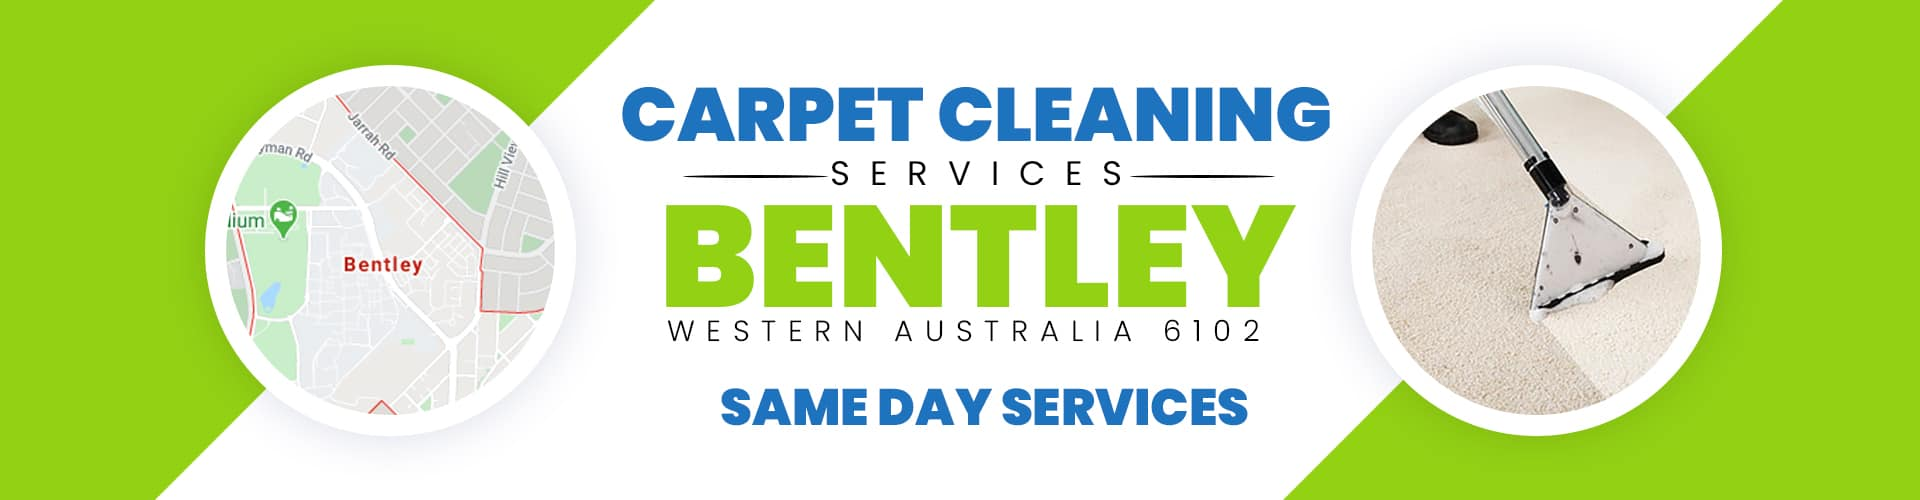 Carpet Cleaning Bentley Wa